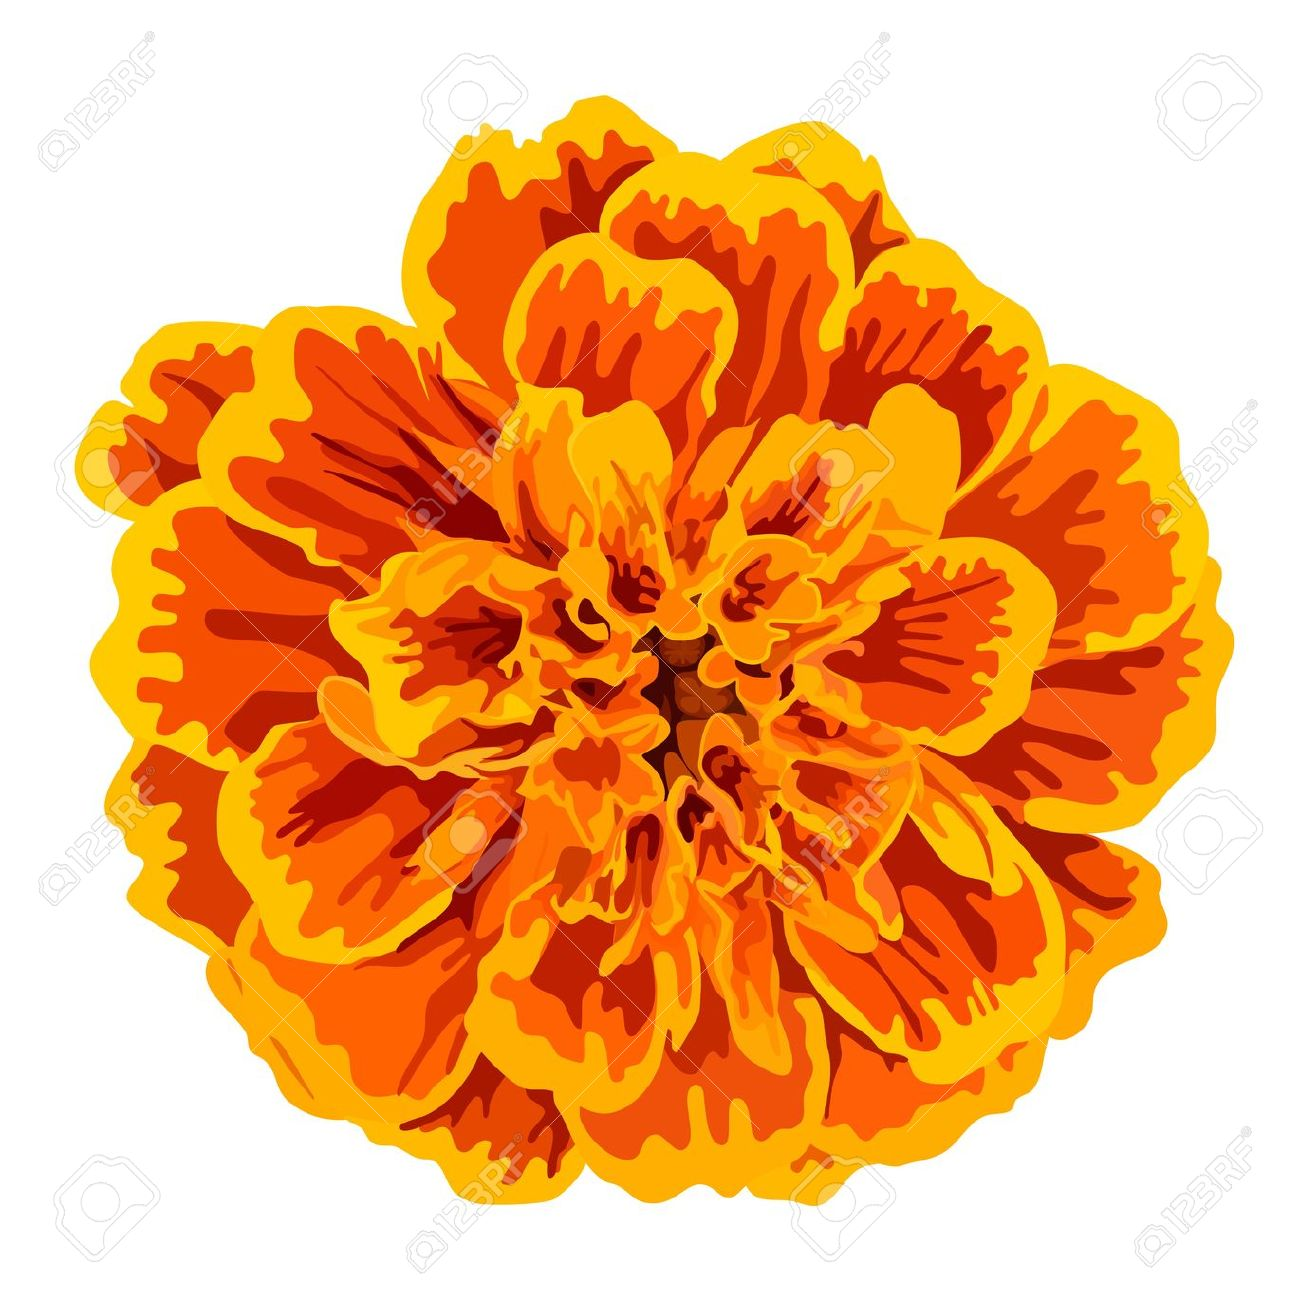 Day of the dead marigolds clipart.